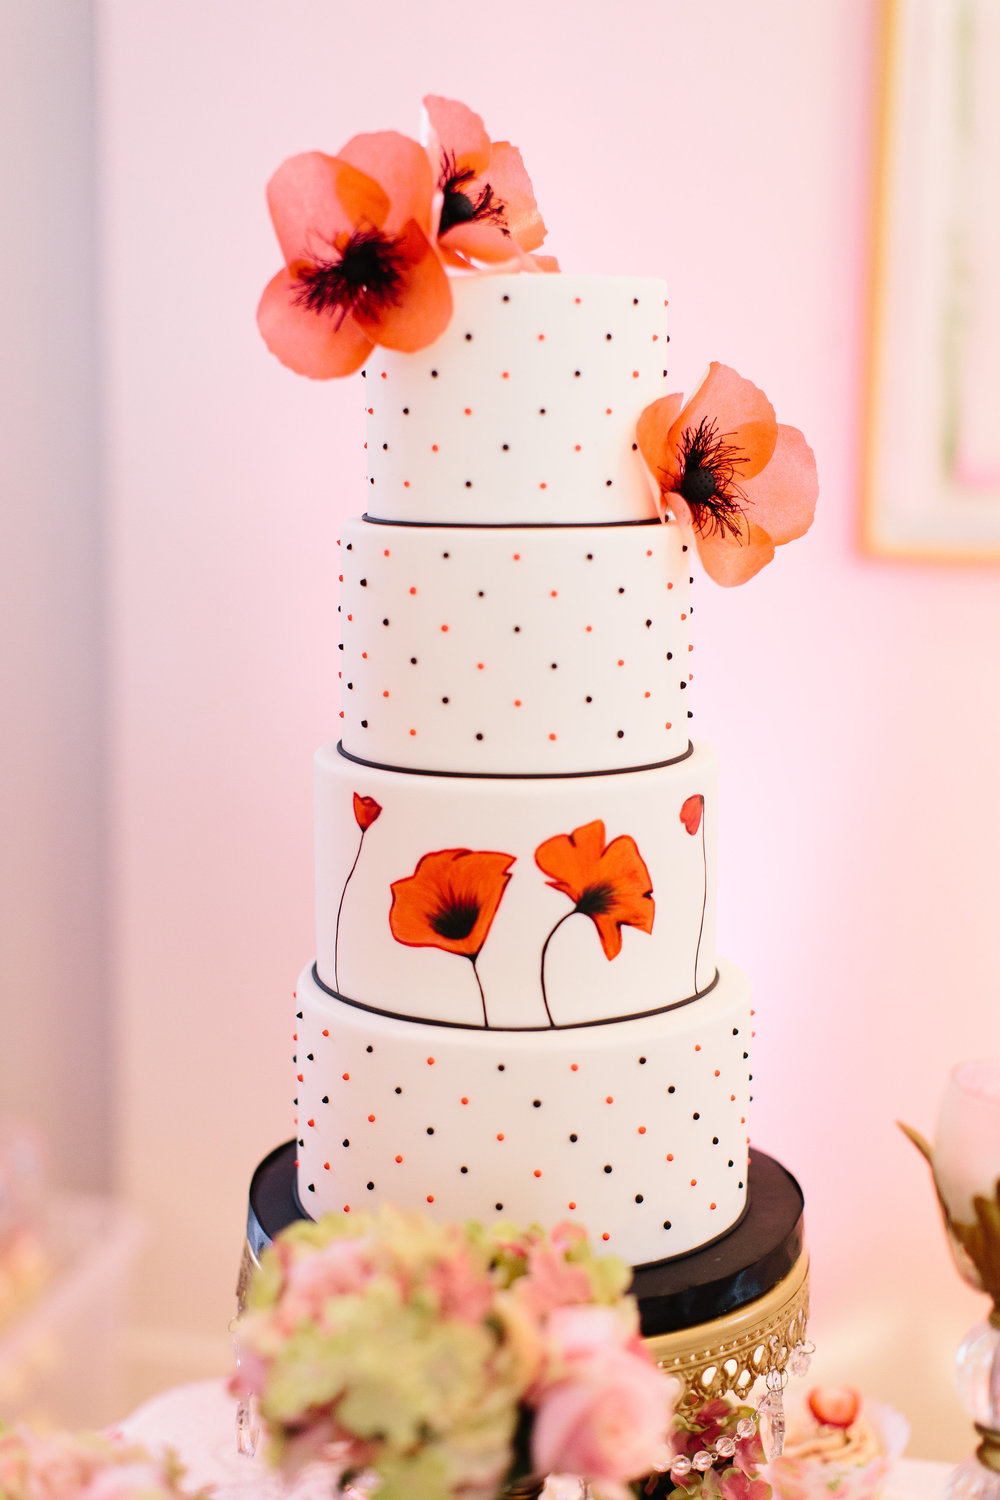 AllisonHopperstadPhoto-147 cake.jpg